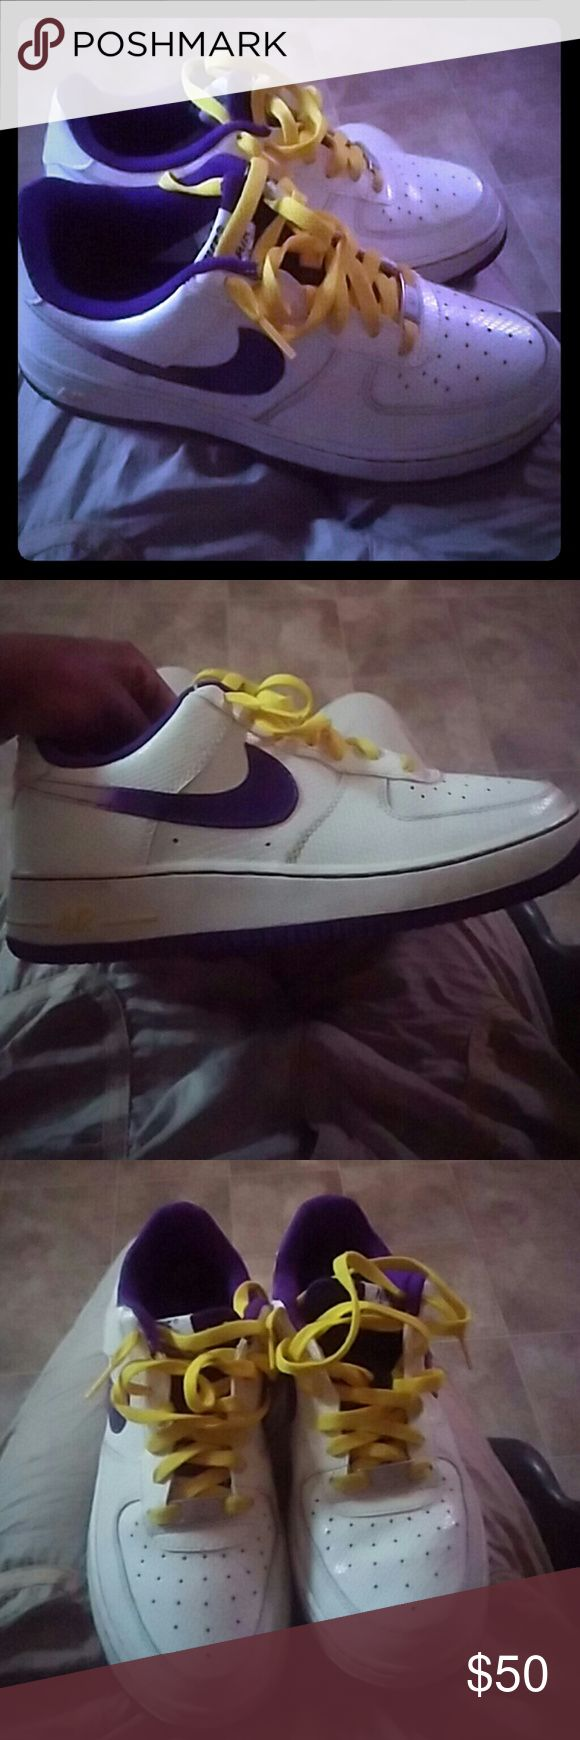 Nike low top forces I wore them 1 time still brand new size 6 in boys Nike Shoes Athletic Shoes